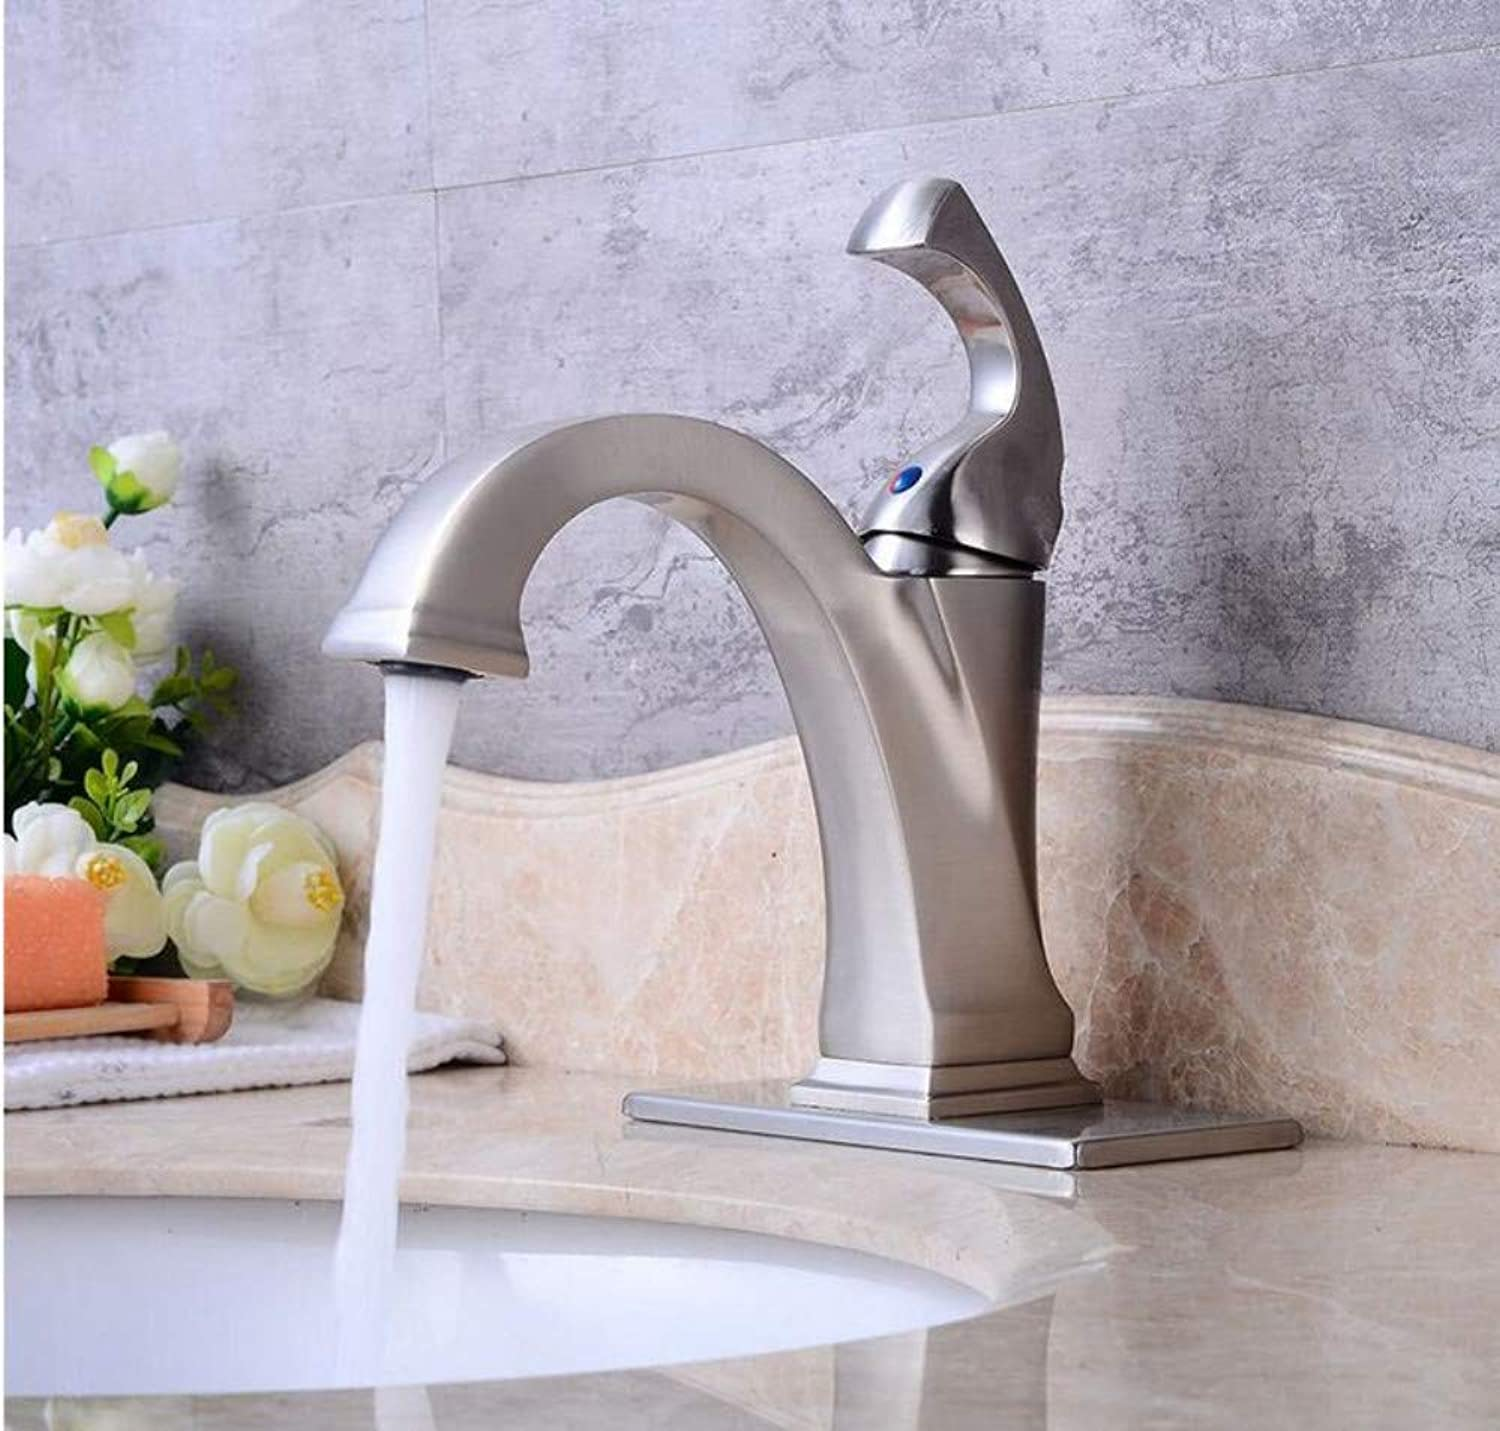 Luxury Modern Faucet Copper Hot and Cold Kitchen Sink Taps Modern Brushed Basin Faucet Bathroom Sink Basin Faucet